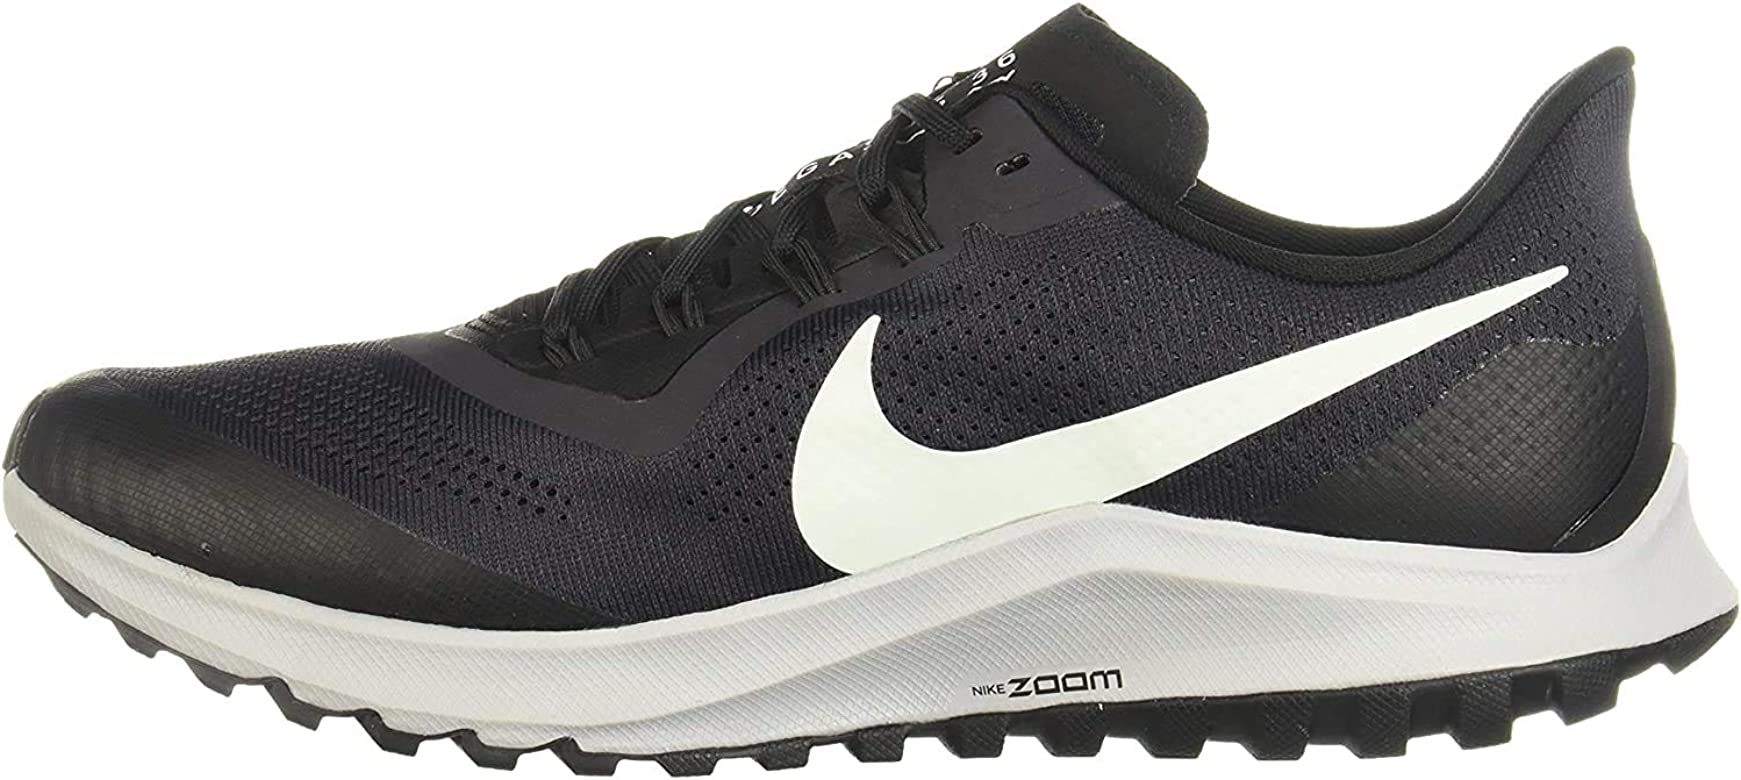 Nike Air Zoom Pegasus 36 Trail, Zapatillas Running para Hombre, Gris (Oil Grey/Barely Grey/Black/Wolf Grey 2), 40.5 EU: Amazon.es: Zapatos y complementos